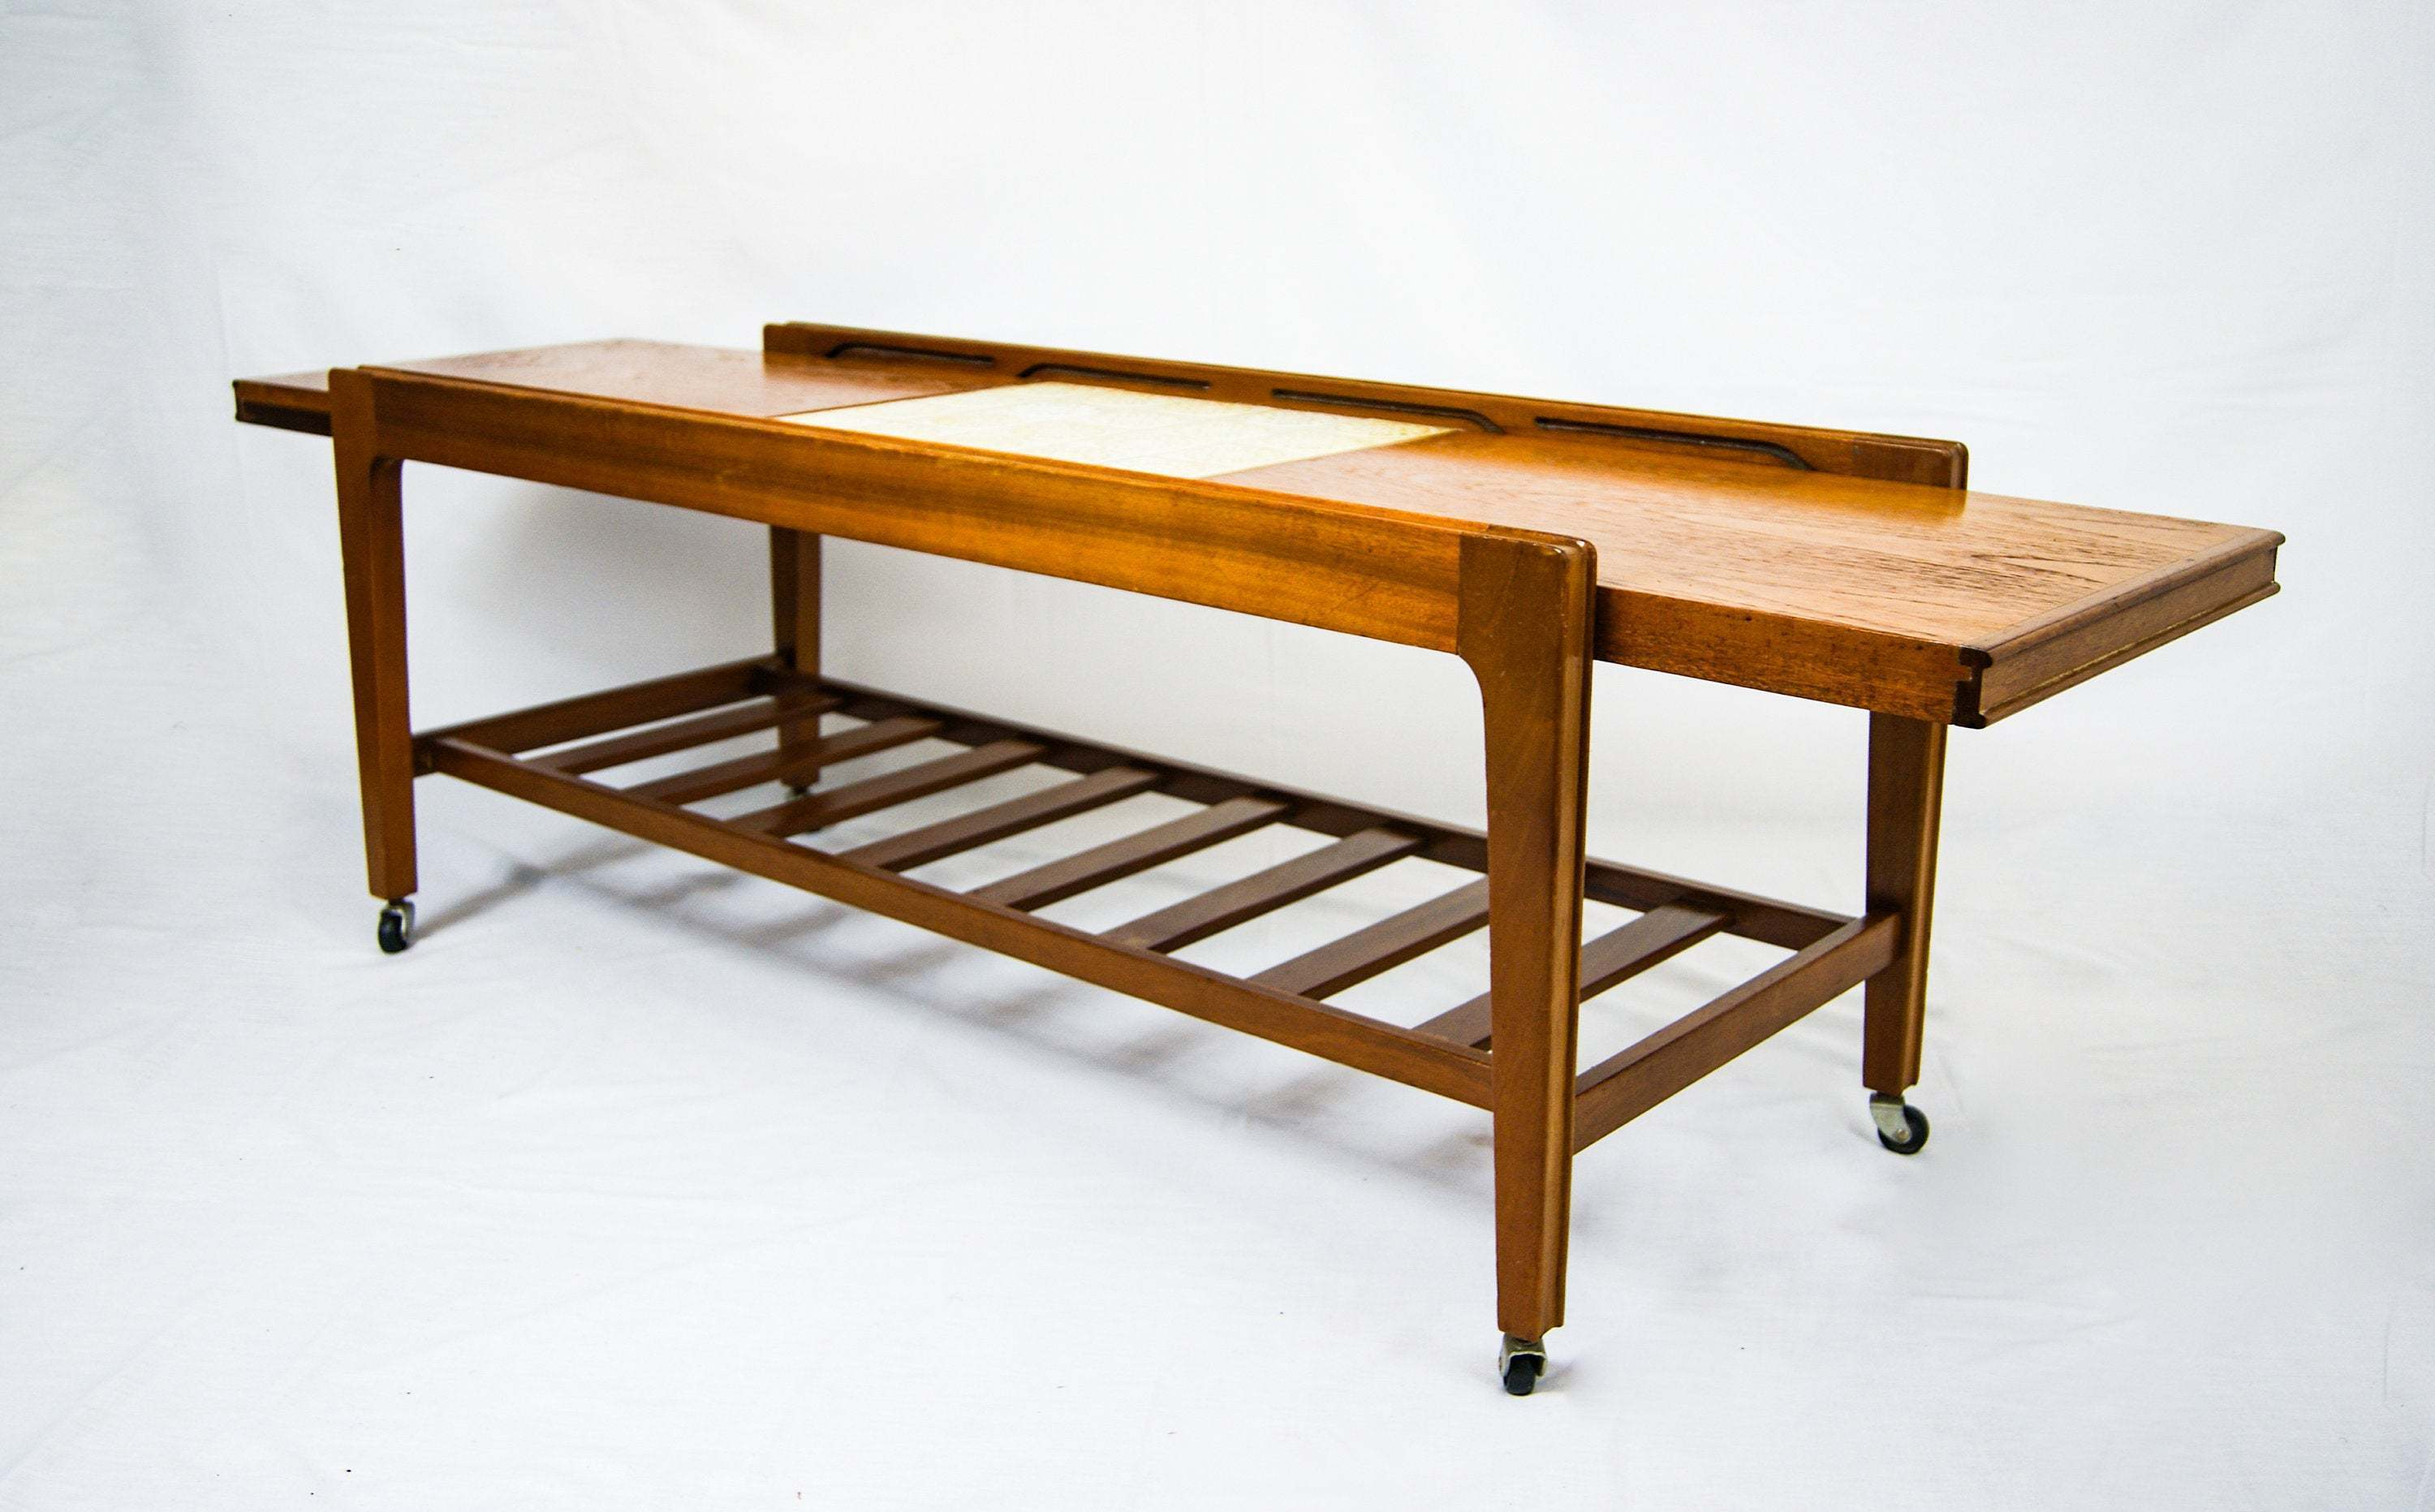 Coffee Table Extendable Top.Mid Century Design Remploy Tiled Top Teak Wood Extendable Two Tier Coffee Table On Castor Wheels